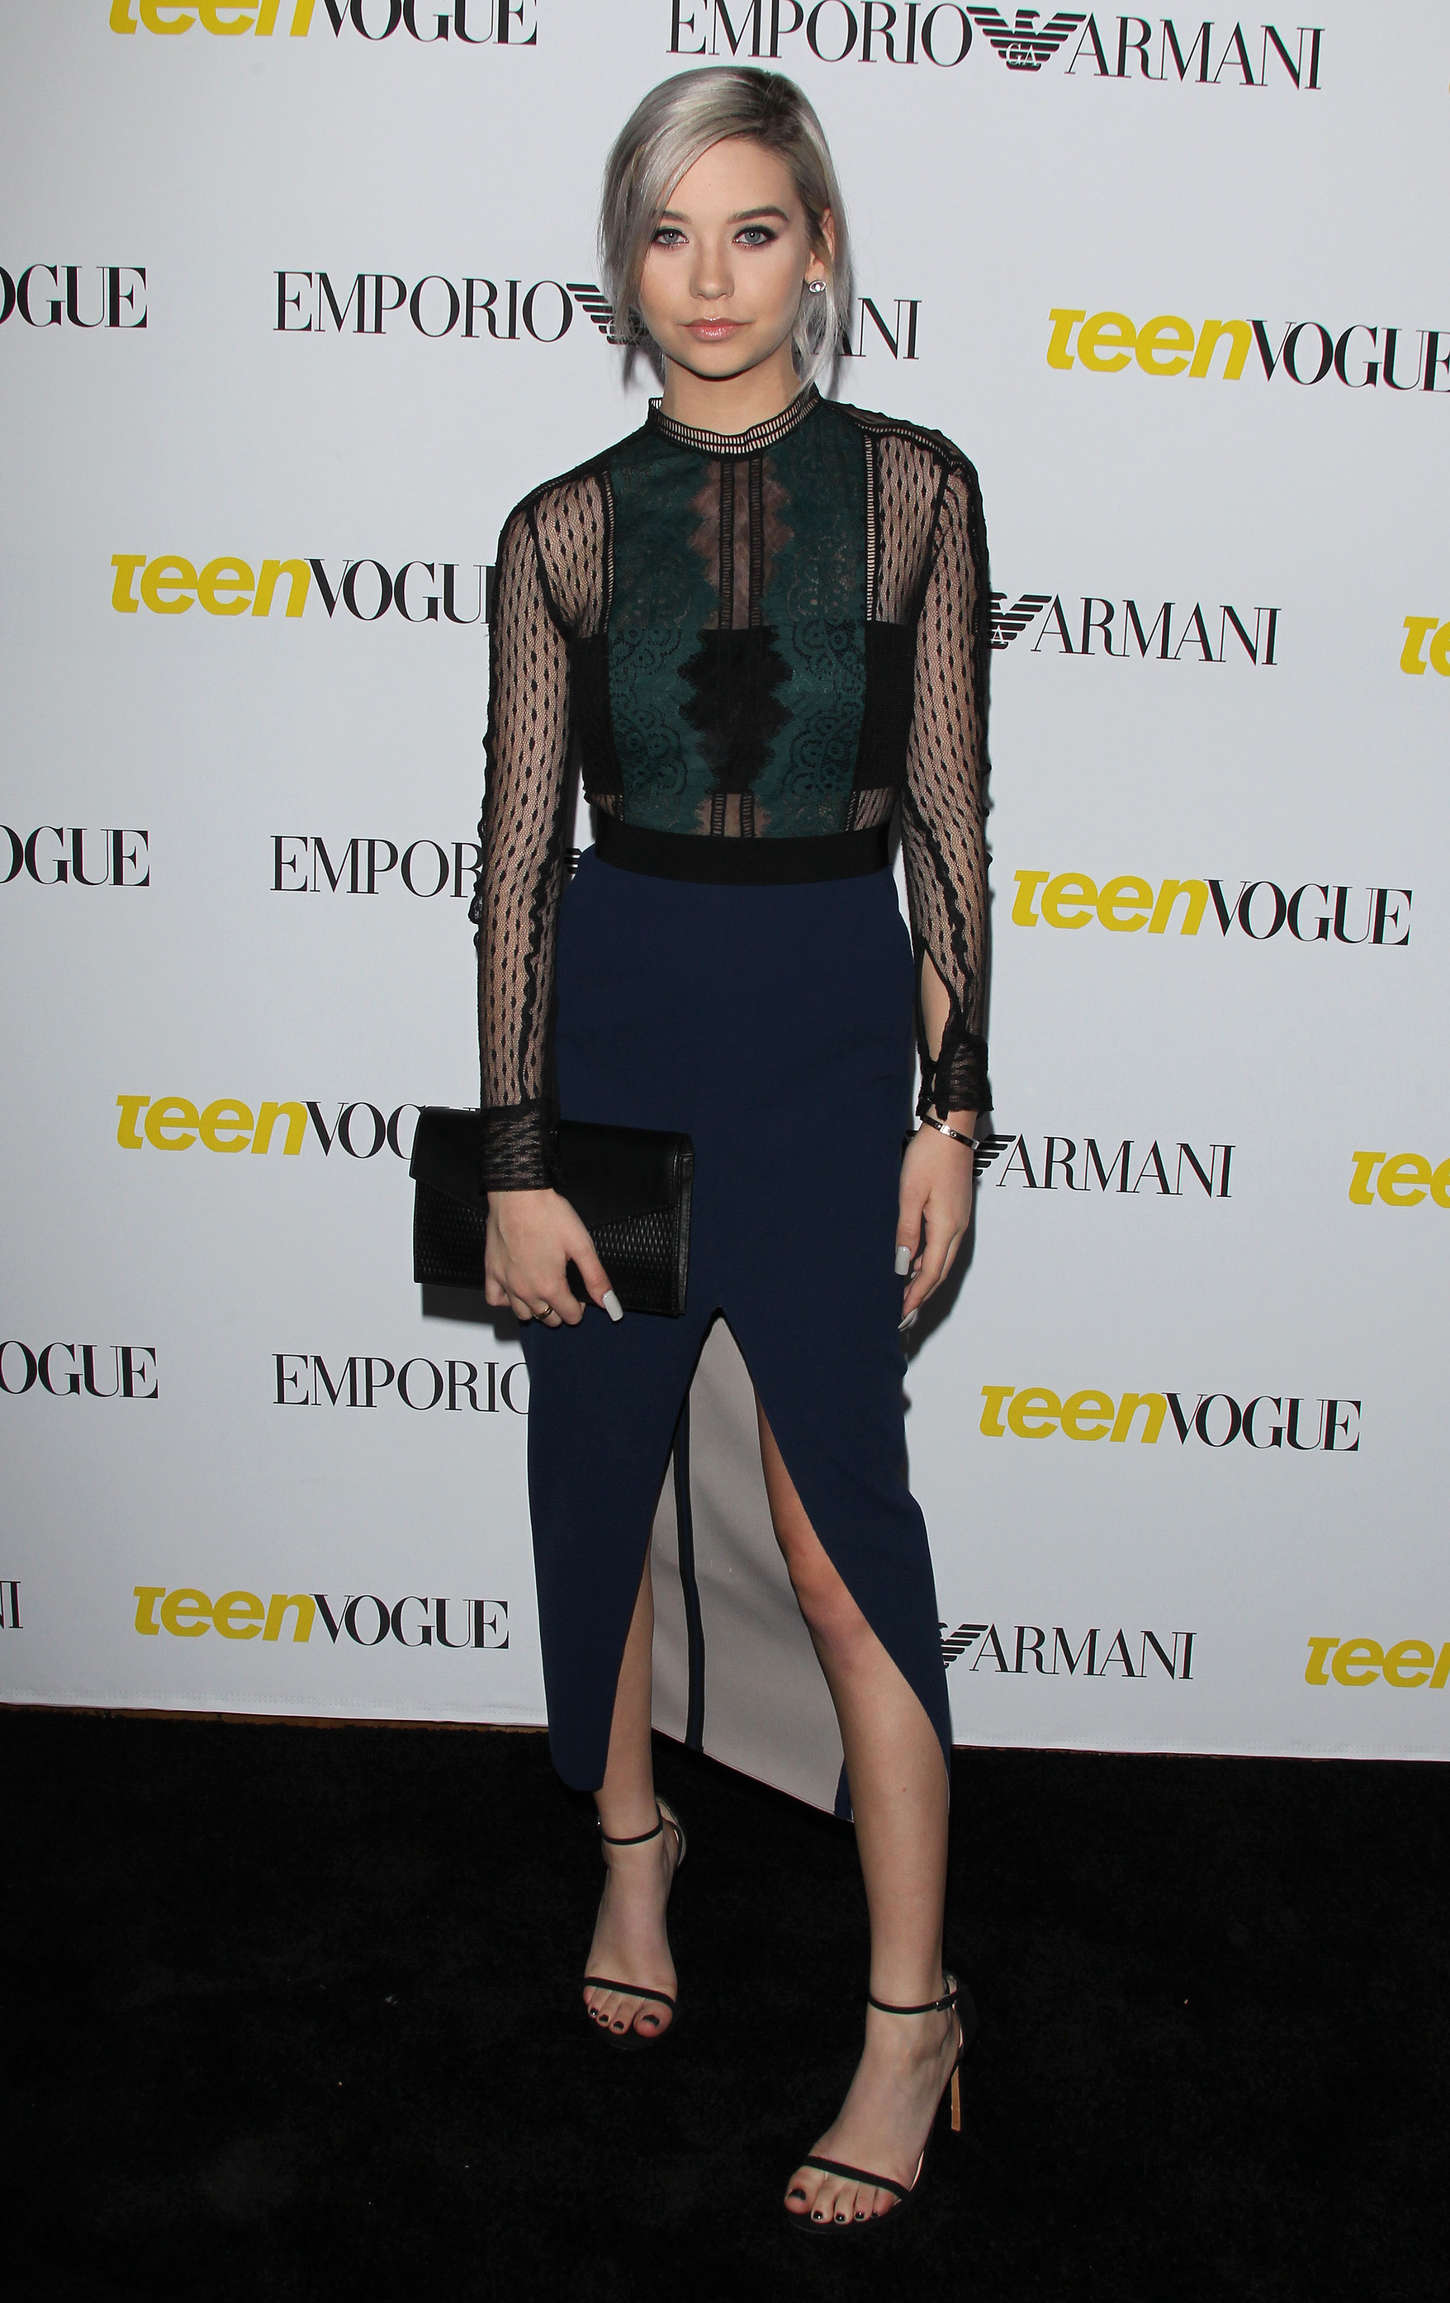 ad1d4269681b08 Amanda Steele  2015 Teen Vogue Young Hollywood Party -04 - Full Size